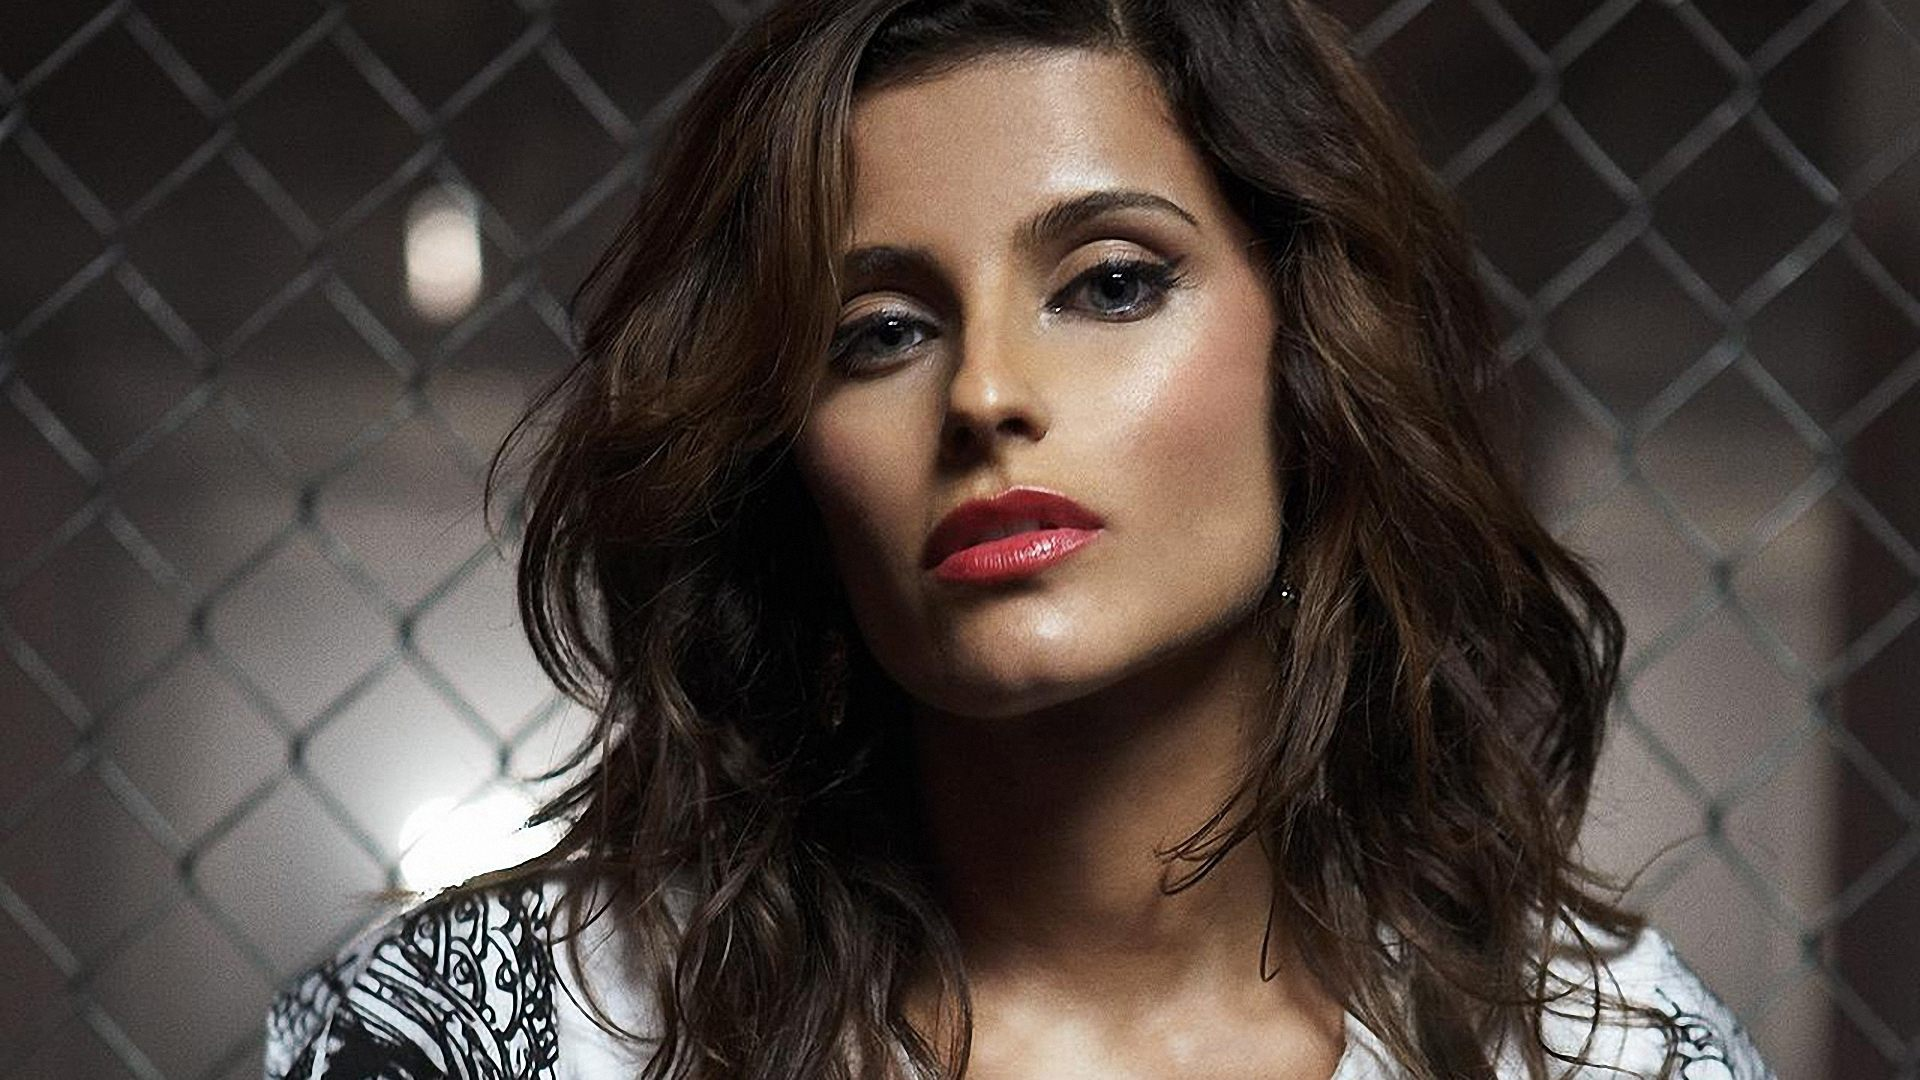 Nelly furtado, сетка, помада, лицо, свет обои, картинки, фото